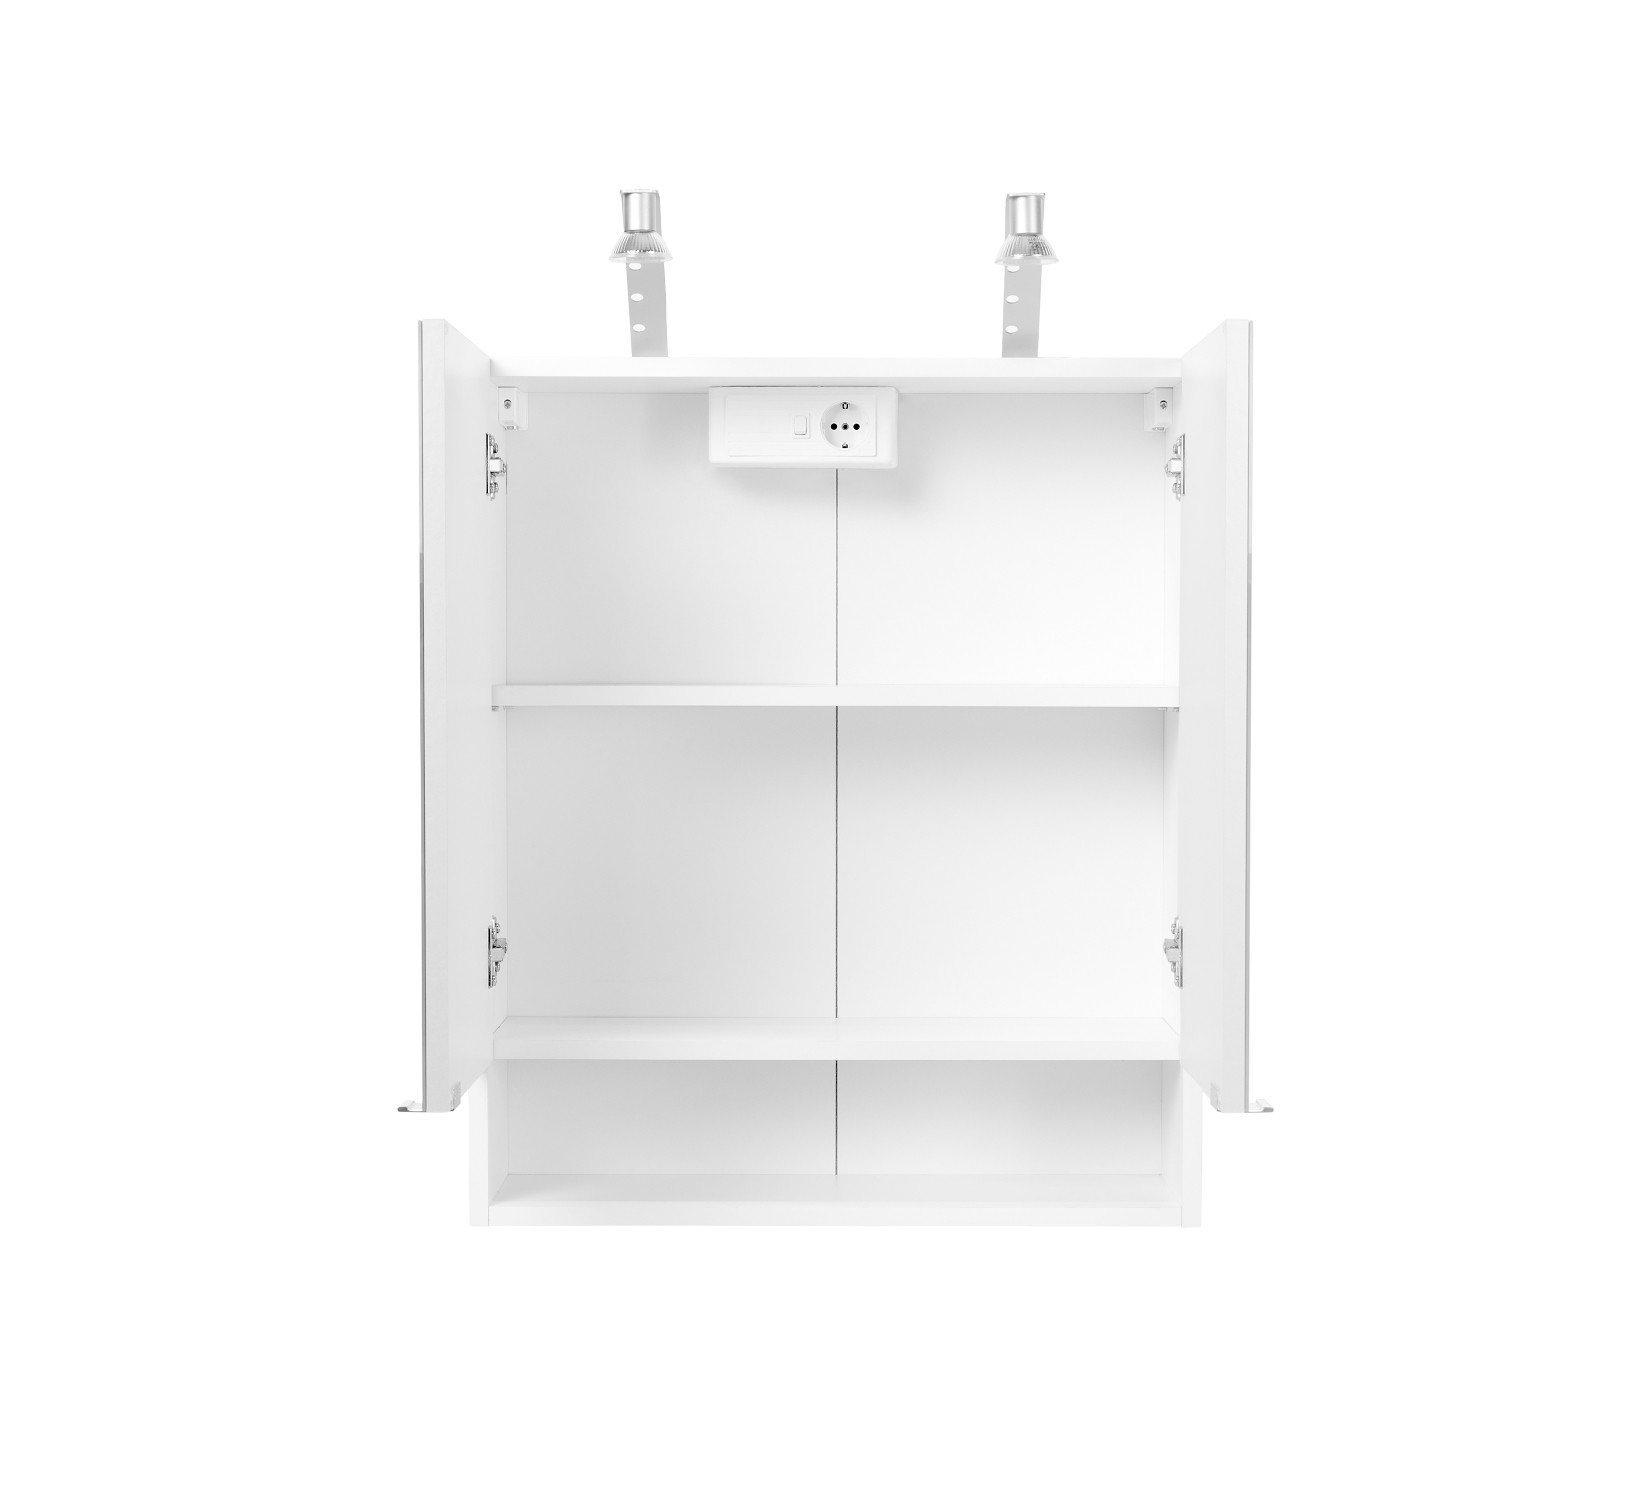 bad spiegelschrank arta 2 t rig 60 cm breit wei bad spiegelschr nke. Black Bedroom Furniture Sets. Home Design Ideas